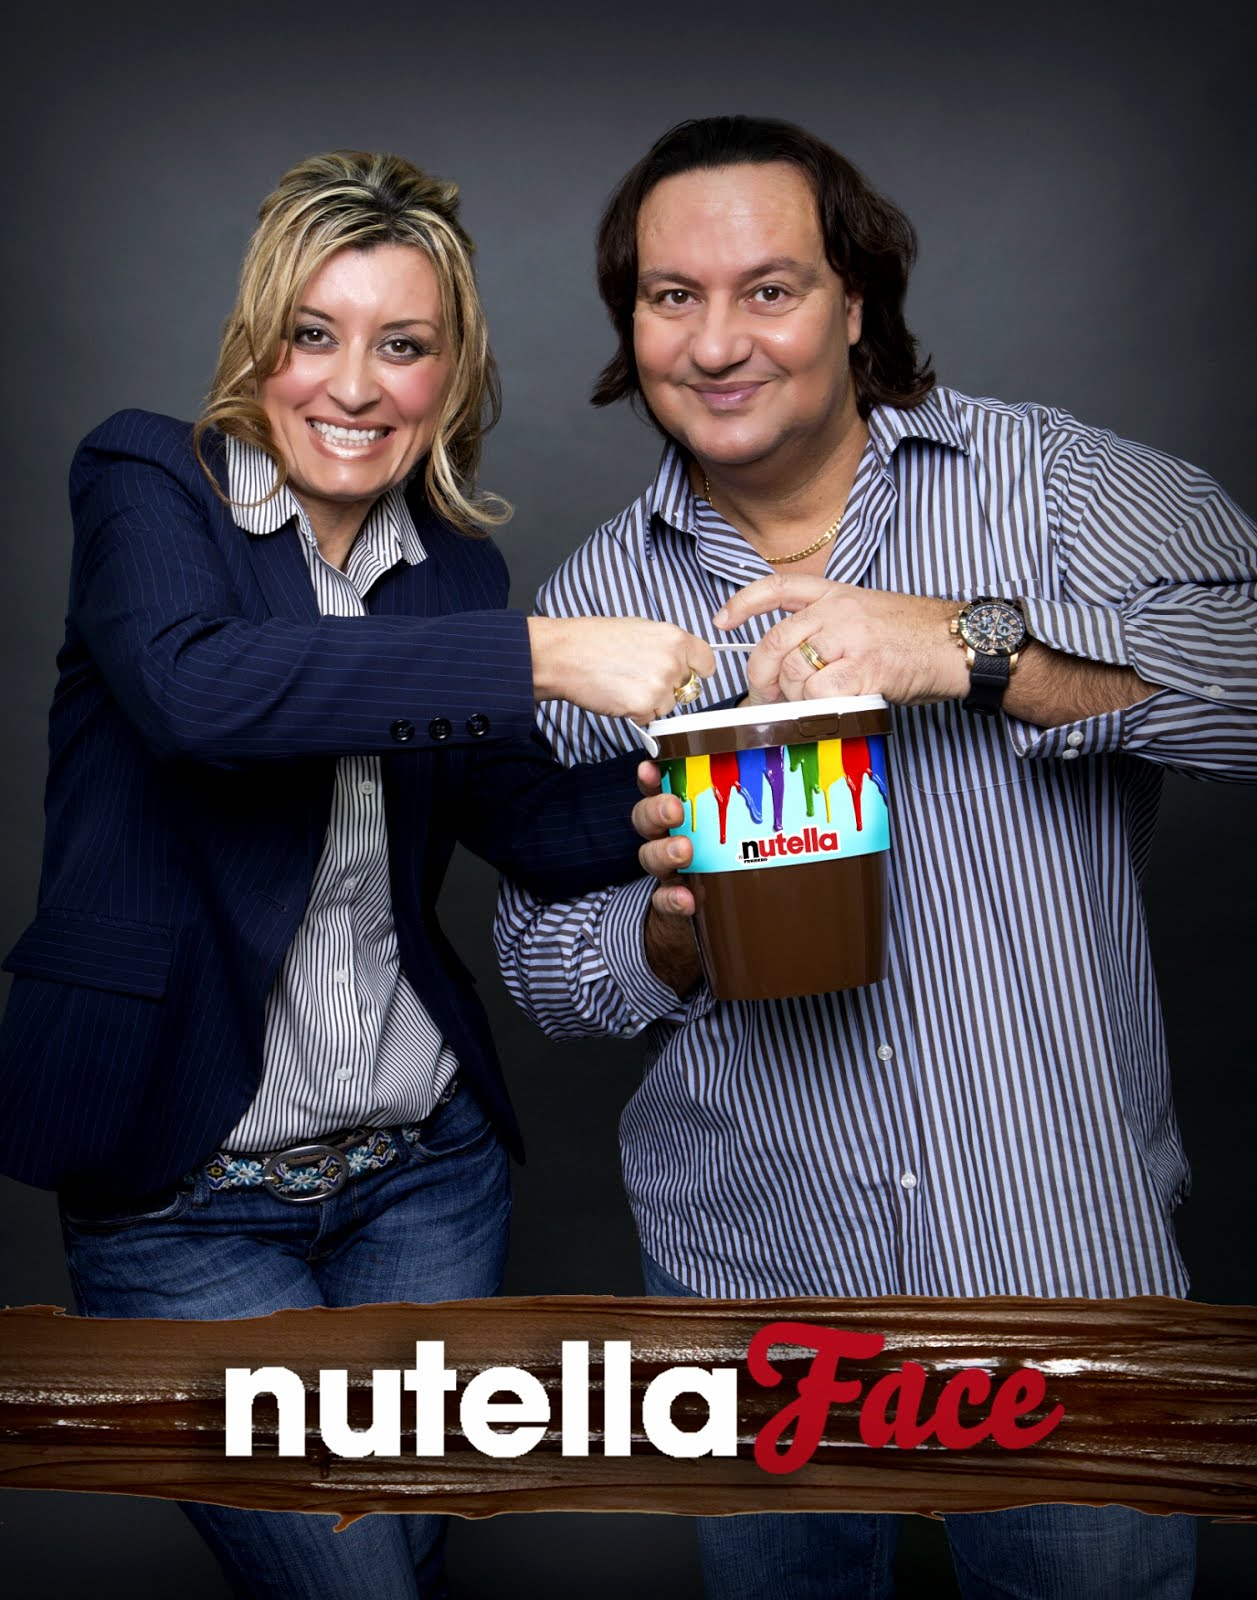 Me, the Music Man and Nutella